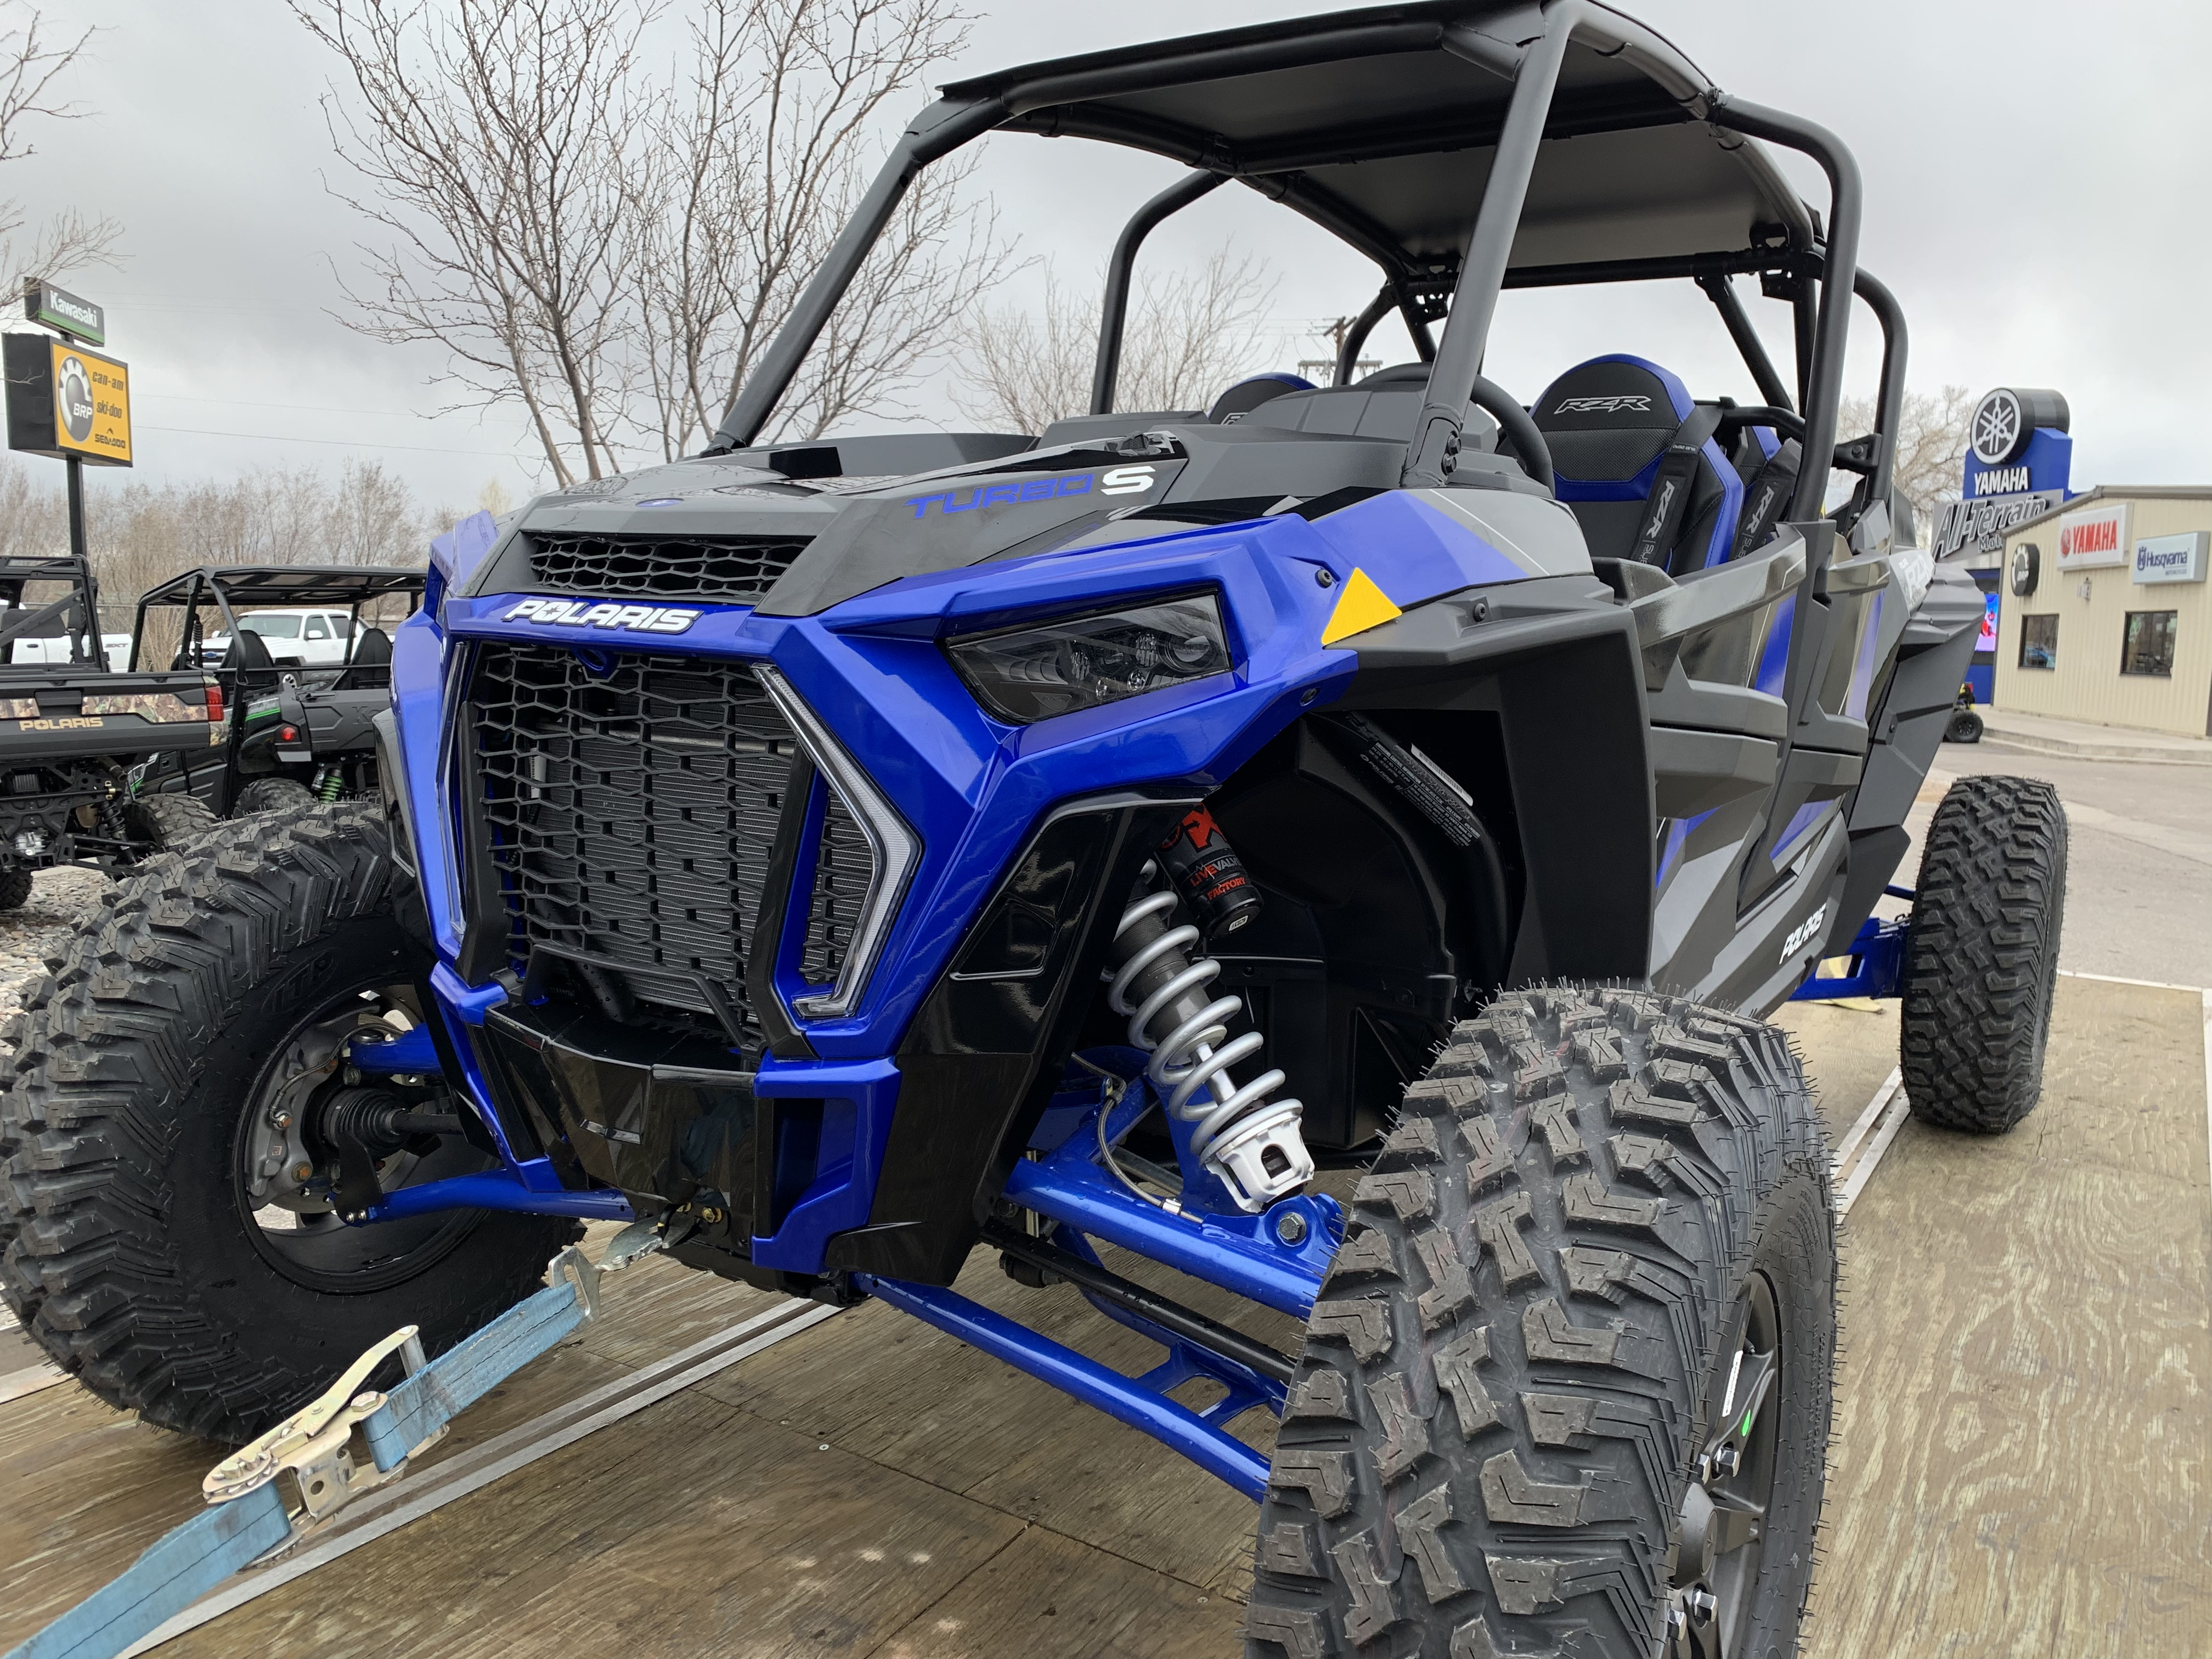 Polaris Side By Side >> Rzr Side By Sides For Rent In Denver Vail Co Vail Extreme Rentals